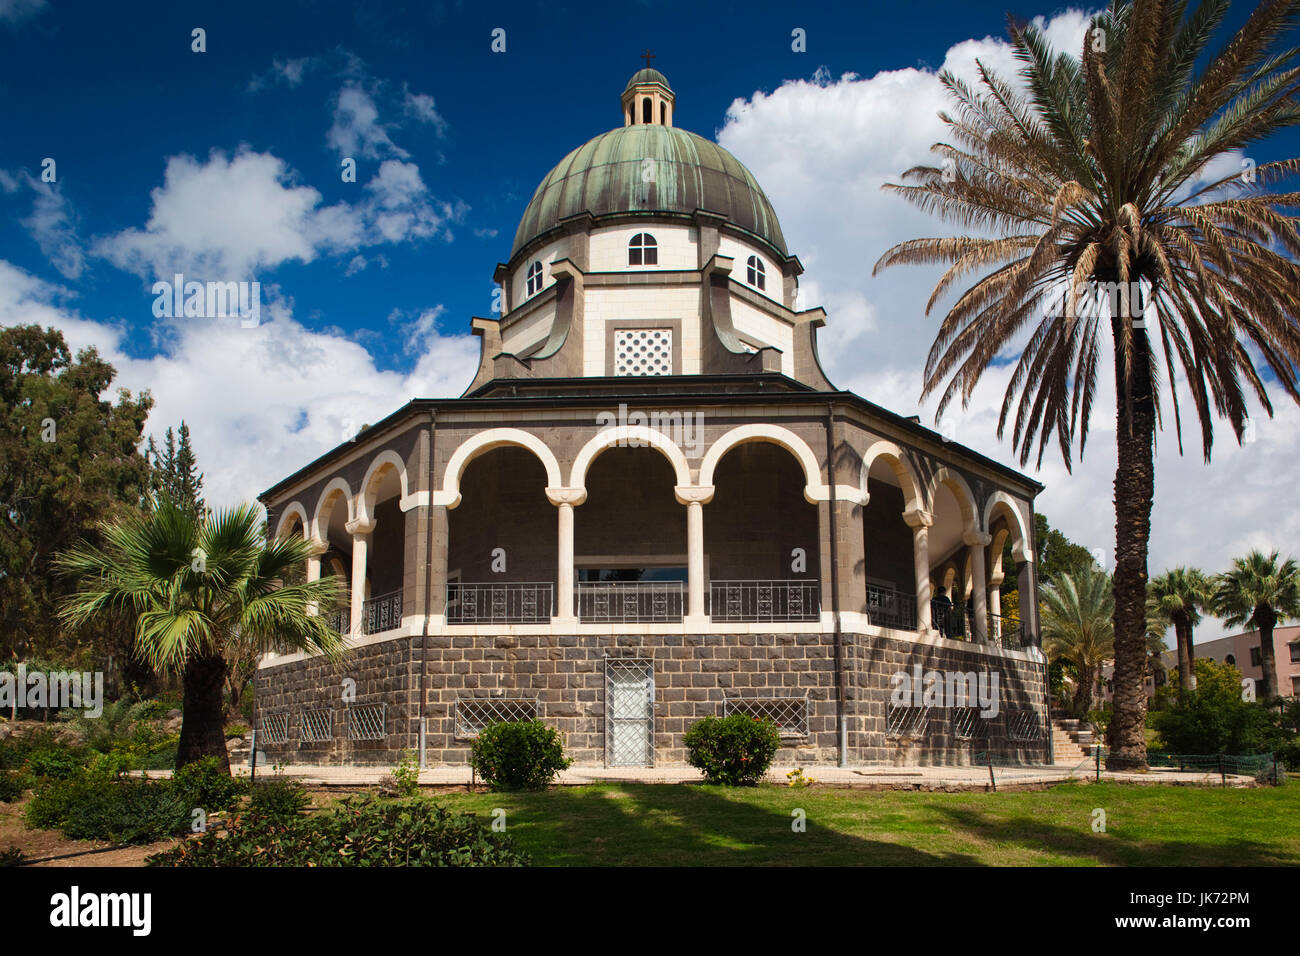 Israel, The Galilee, Tabgha, Mount of the Beatitudes, Church of the Beatitudes, exterior Stock Photo